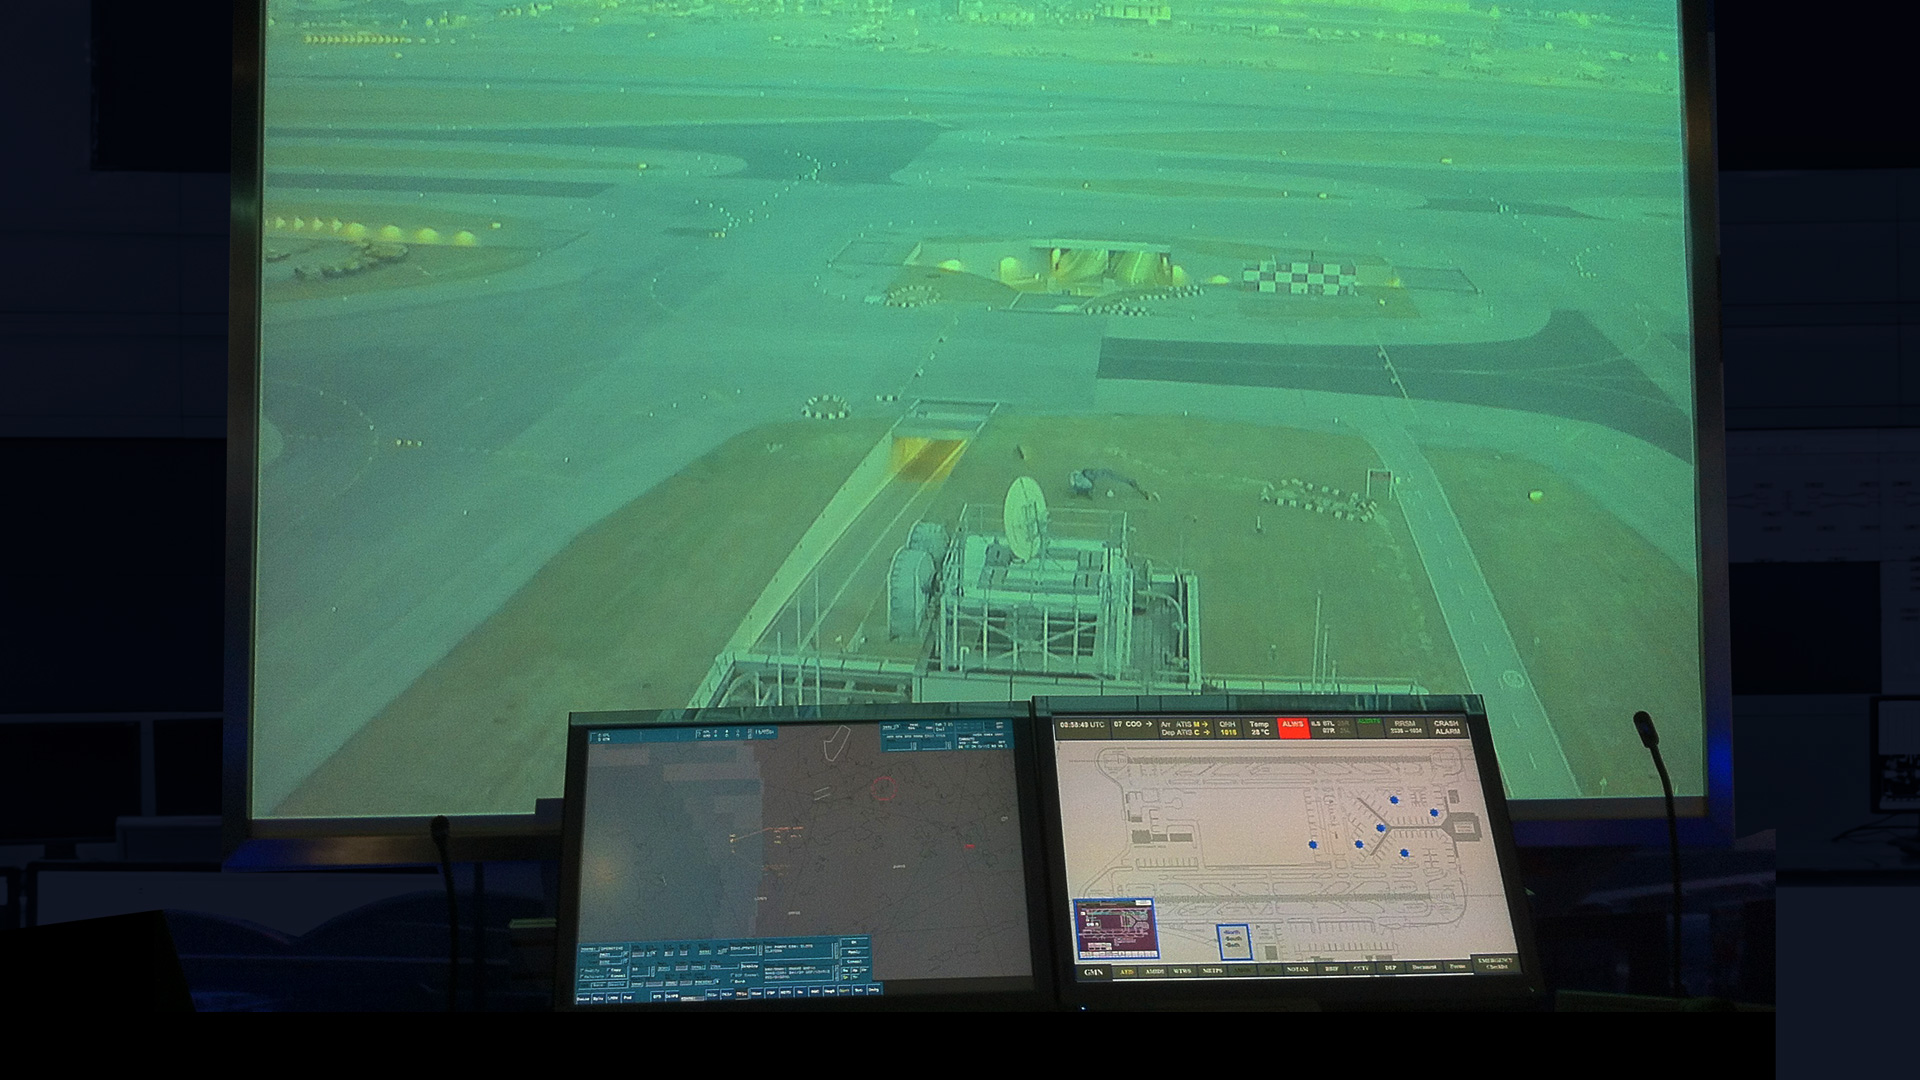 HKCAD uses Matrox Maevex H.264 encoder and decoder devices to stream live, low- bandwidth aircraft traffic footage.